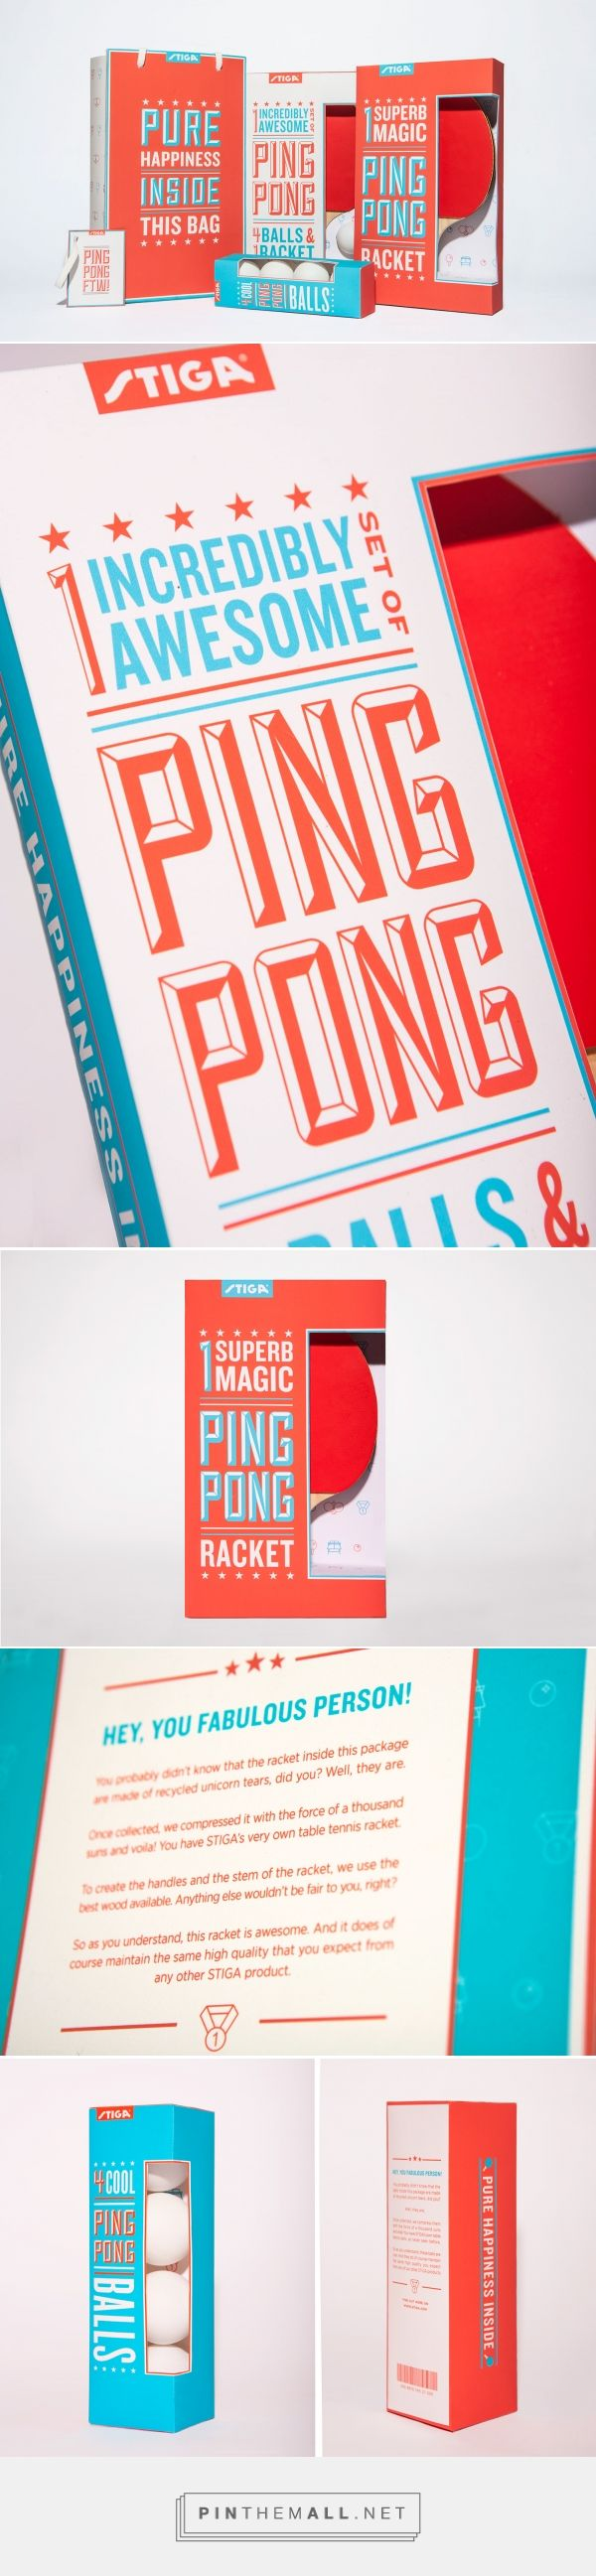 686 best design ideas images on pinterest posters graph design stiga ping pong packaging a colorful and fun line of table tennis products directed towards fandeluxe Image collections